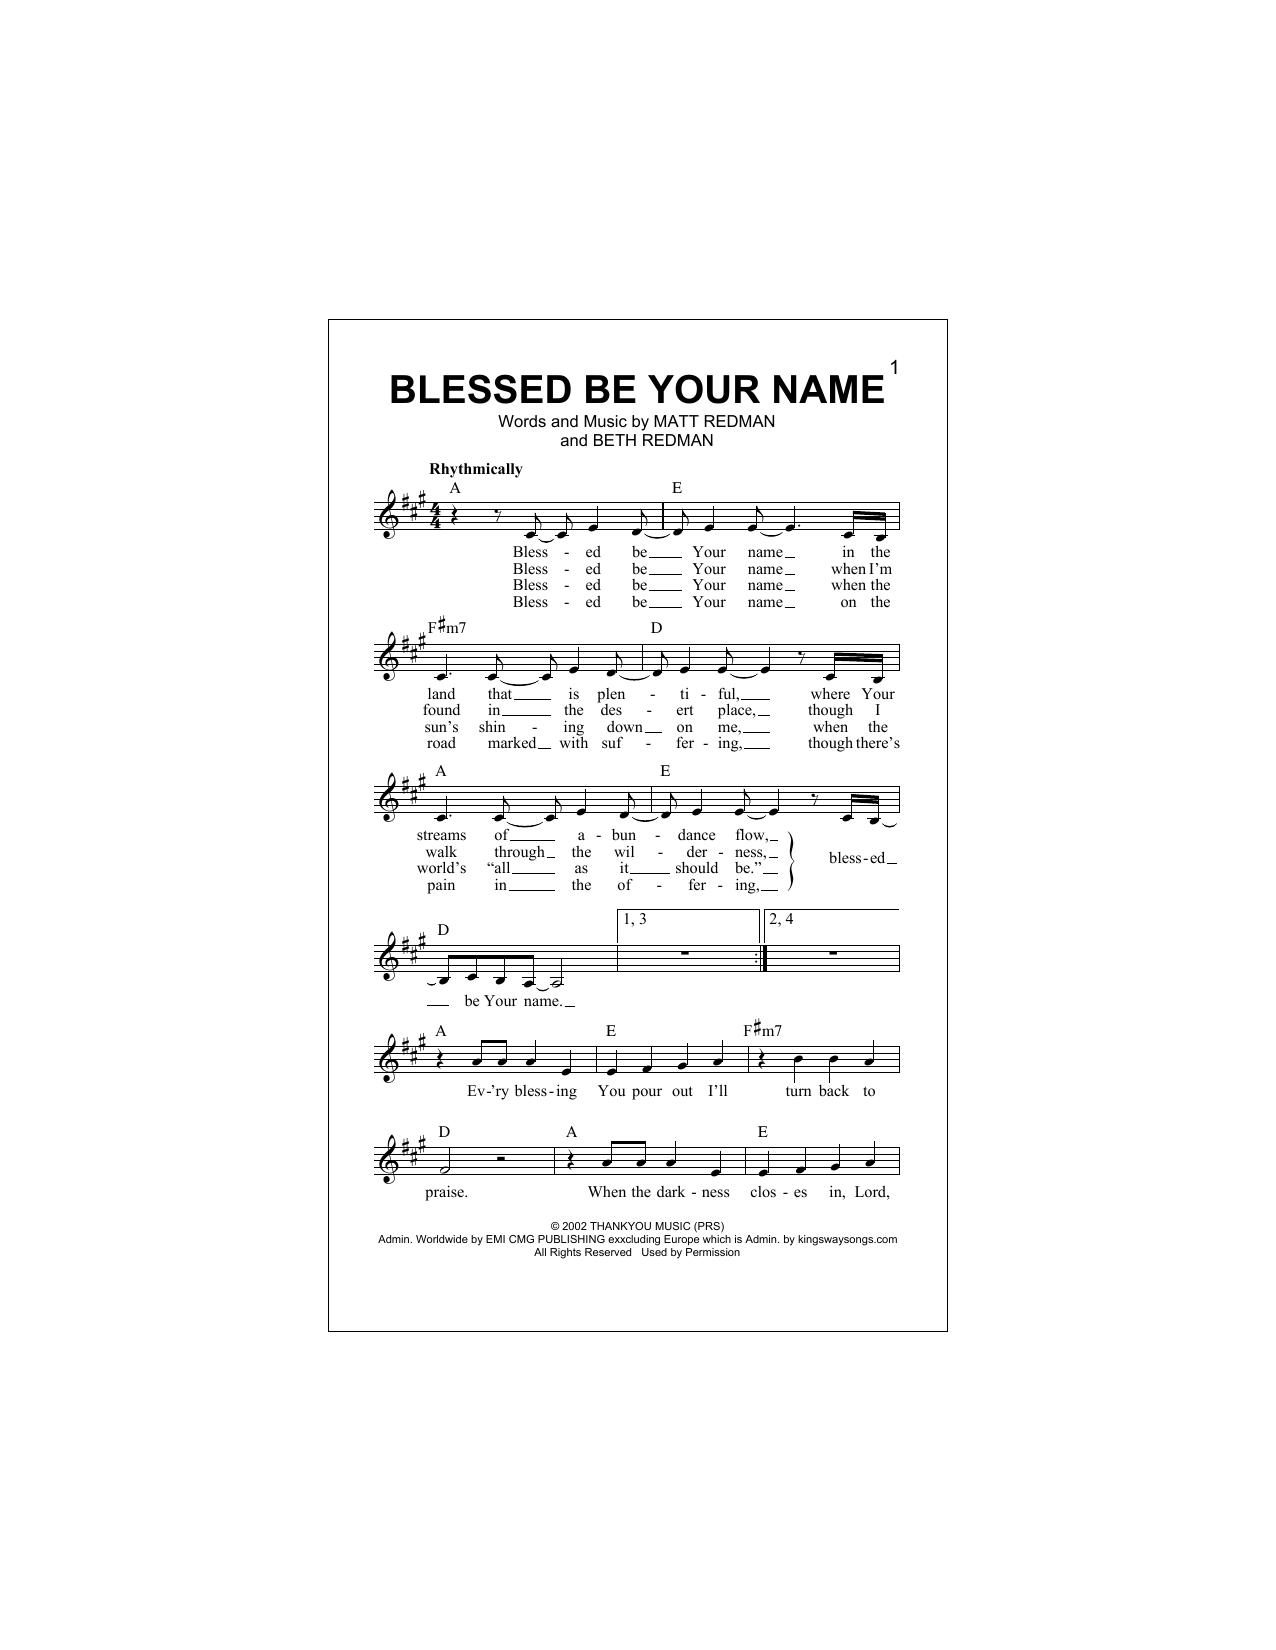 Blessed Be Your Name Chords Tree63 Blessed Be Your Name Sheet Music Notes Chords Download Printable Melody Line Lyrics Chords Sku 194481